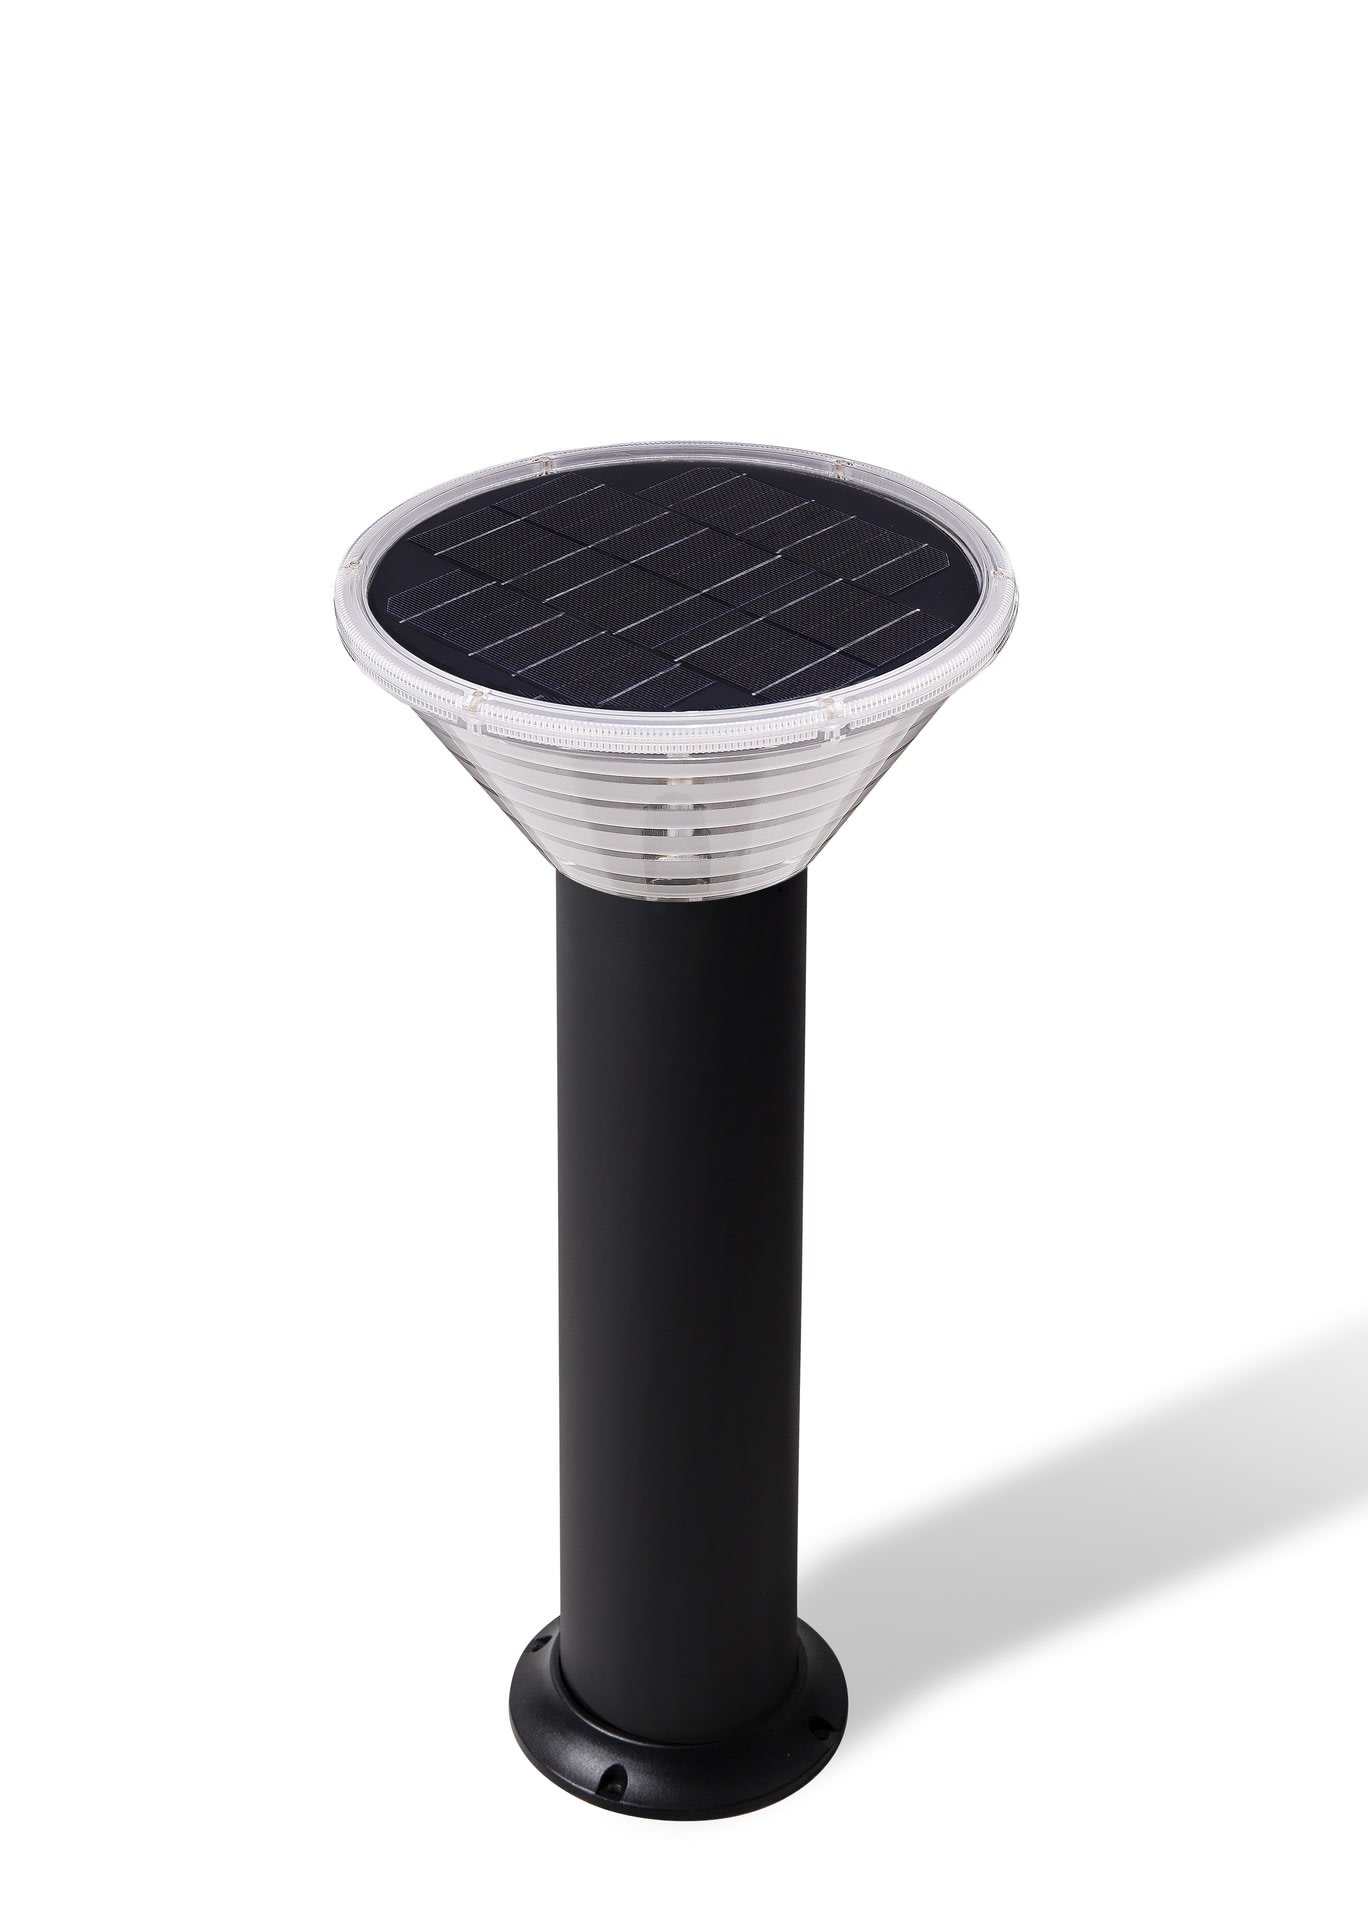 Spark Solar PathLight from solar-power